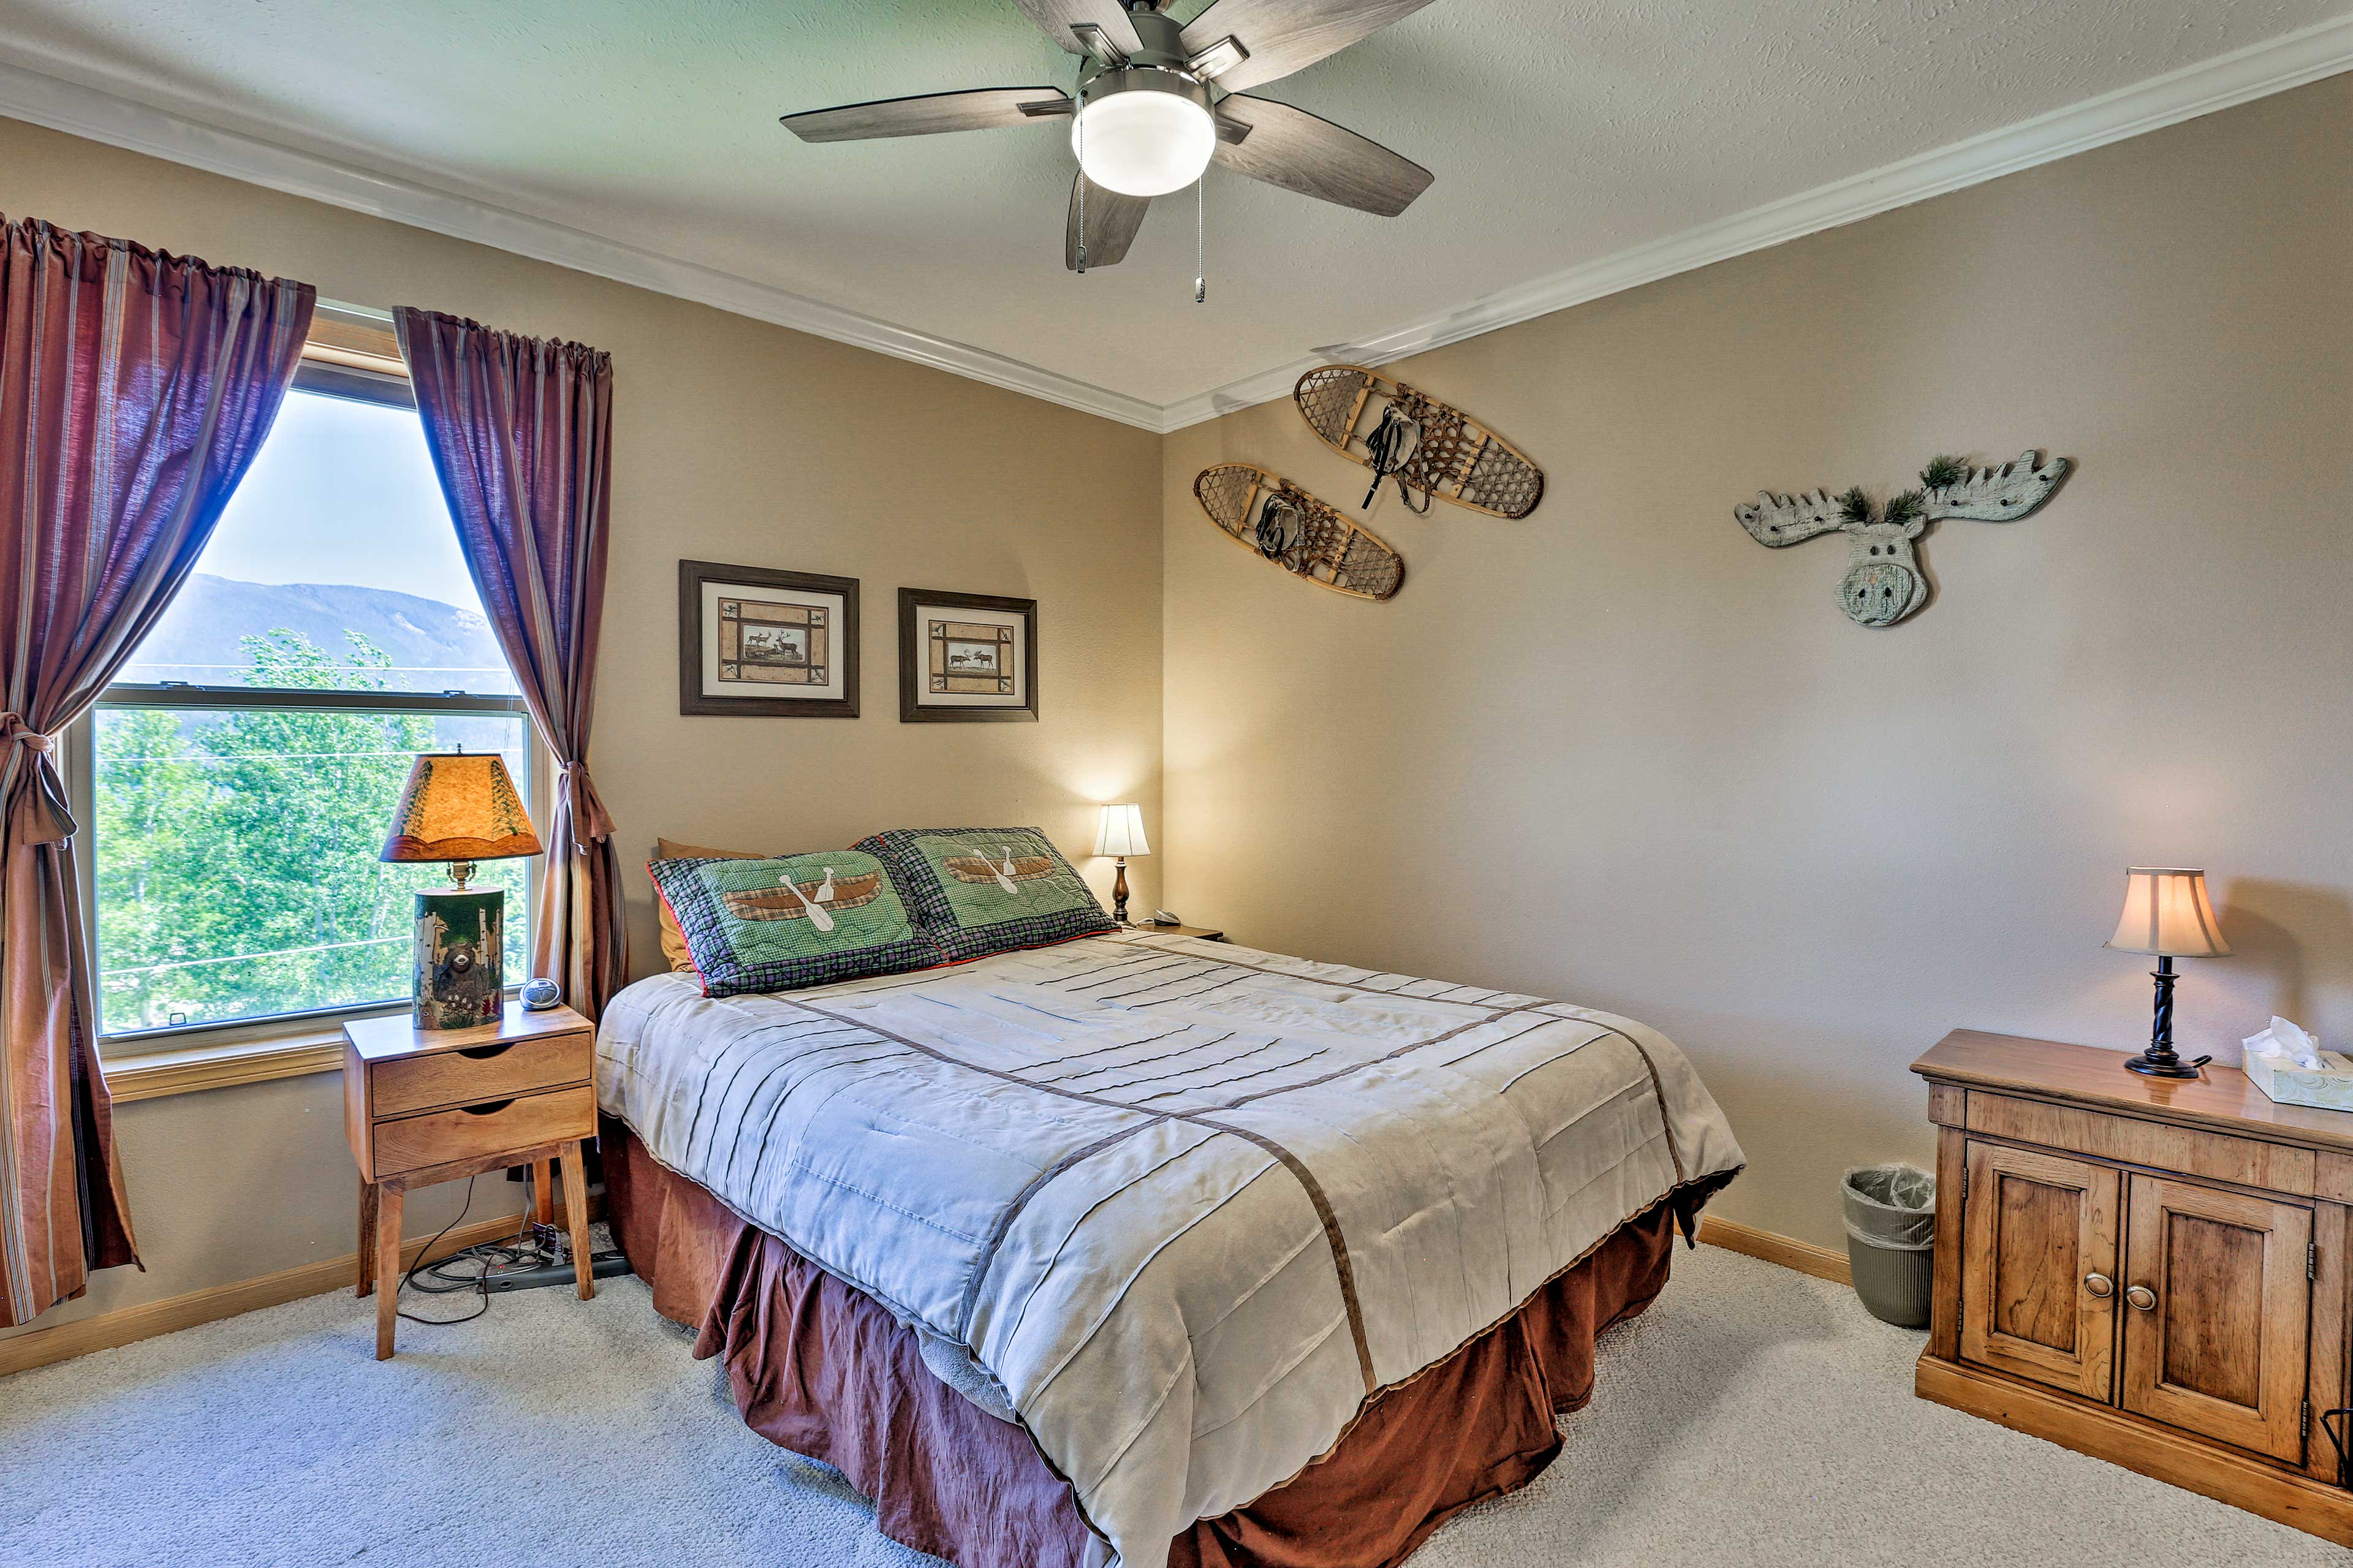 Pick your side of the queen-sized bed in bedroom 2.